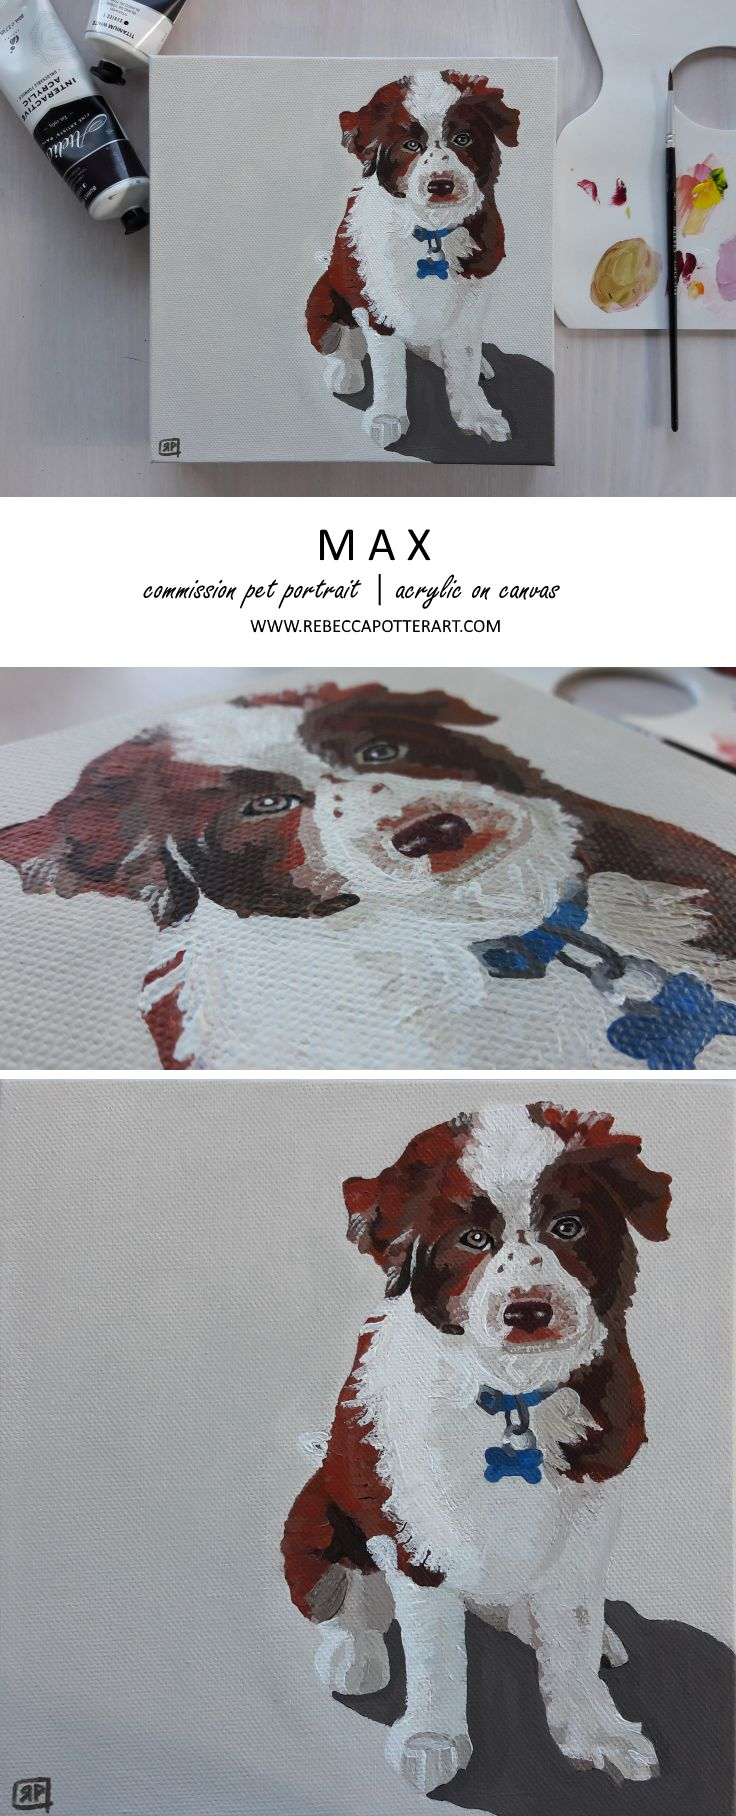 Commission Pet Portrait - Max. Acrylic on Canvas Painting by Rebecca Potter. July 2017 [SOLD]